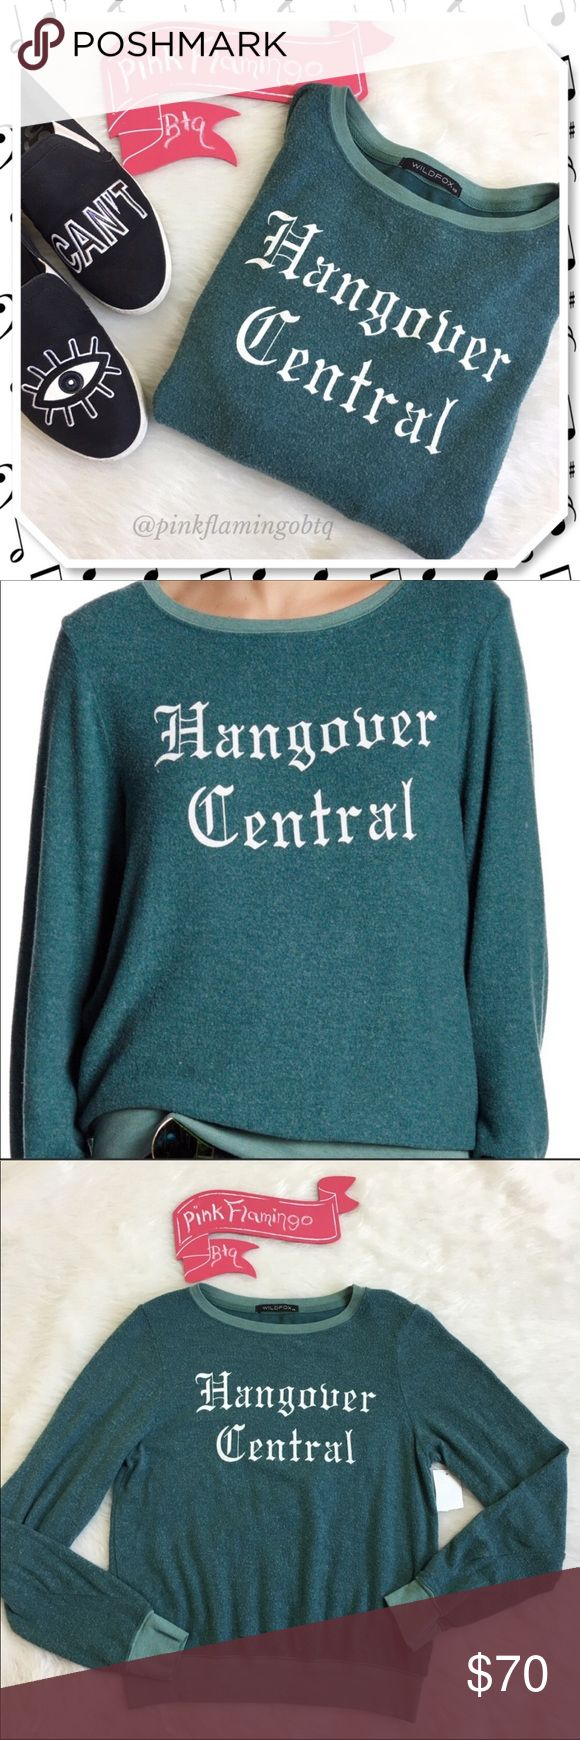 NWT Wildfox Hangover Baggy Beach Jumper Sweatshirt NWT Wildfox Hangover Central soft beach jumper sweatshirt. Bring on the Aspirin and greasy food this fuzzy sweatshirt in Wildfox's signature inside out soft fuzzy jumper feel. Perfect lazy Sunday outfit! ⚡Sam Edelman eye can't shoes not for sale⚡ P285 Wildfox Tops Sweatshirts & Hoodies